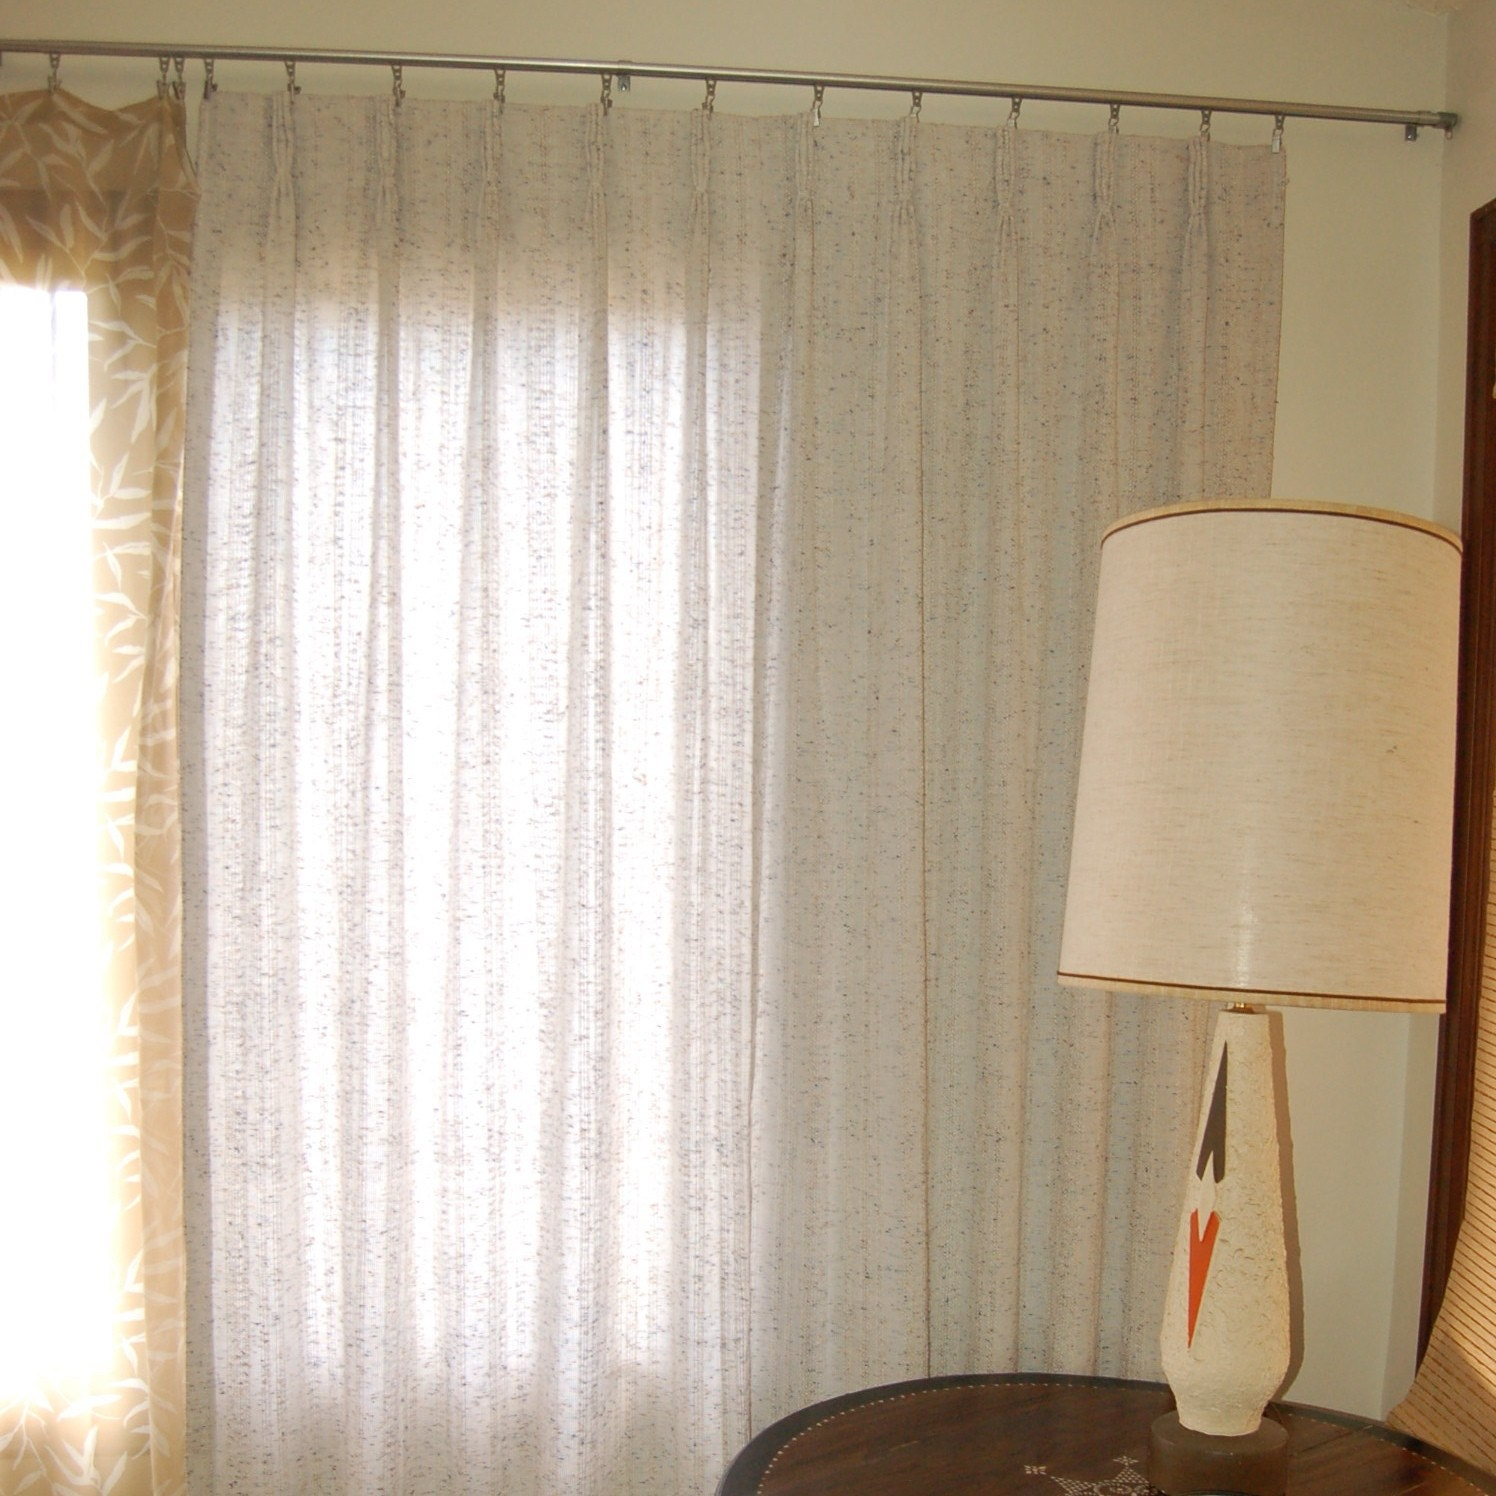 Vintage Mid Century Modern Pleated Curtains In Greyish White